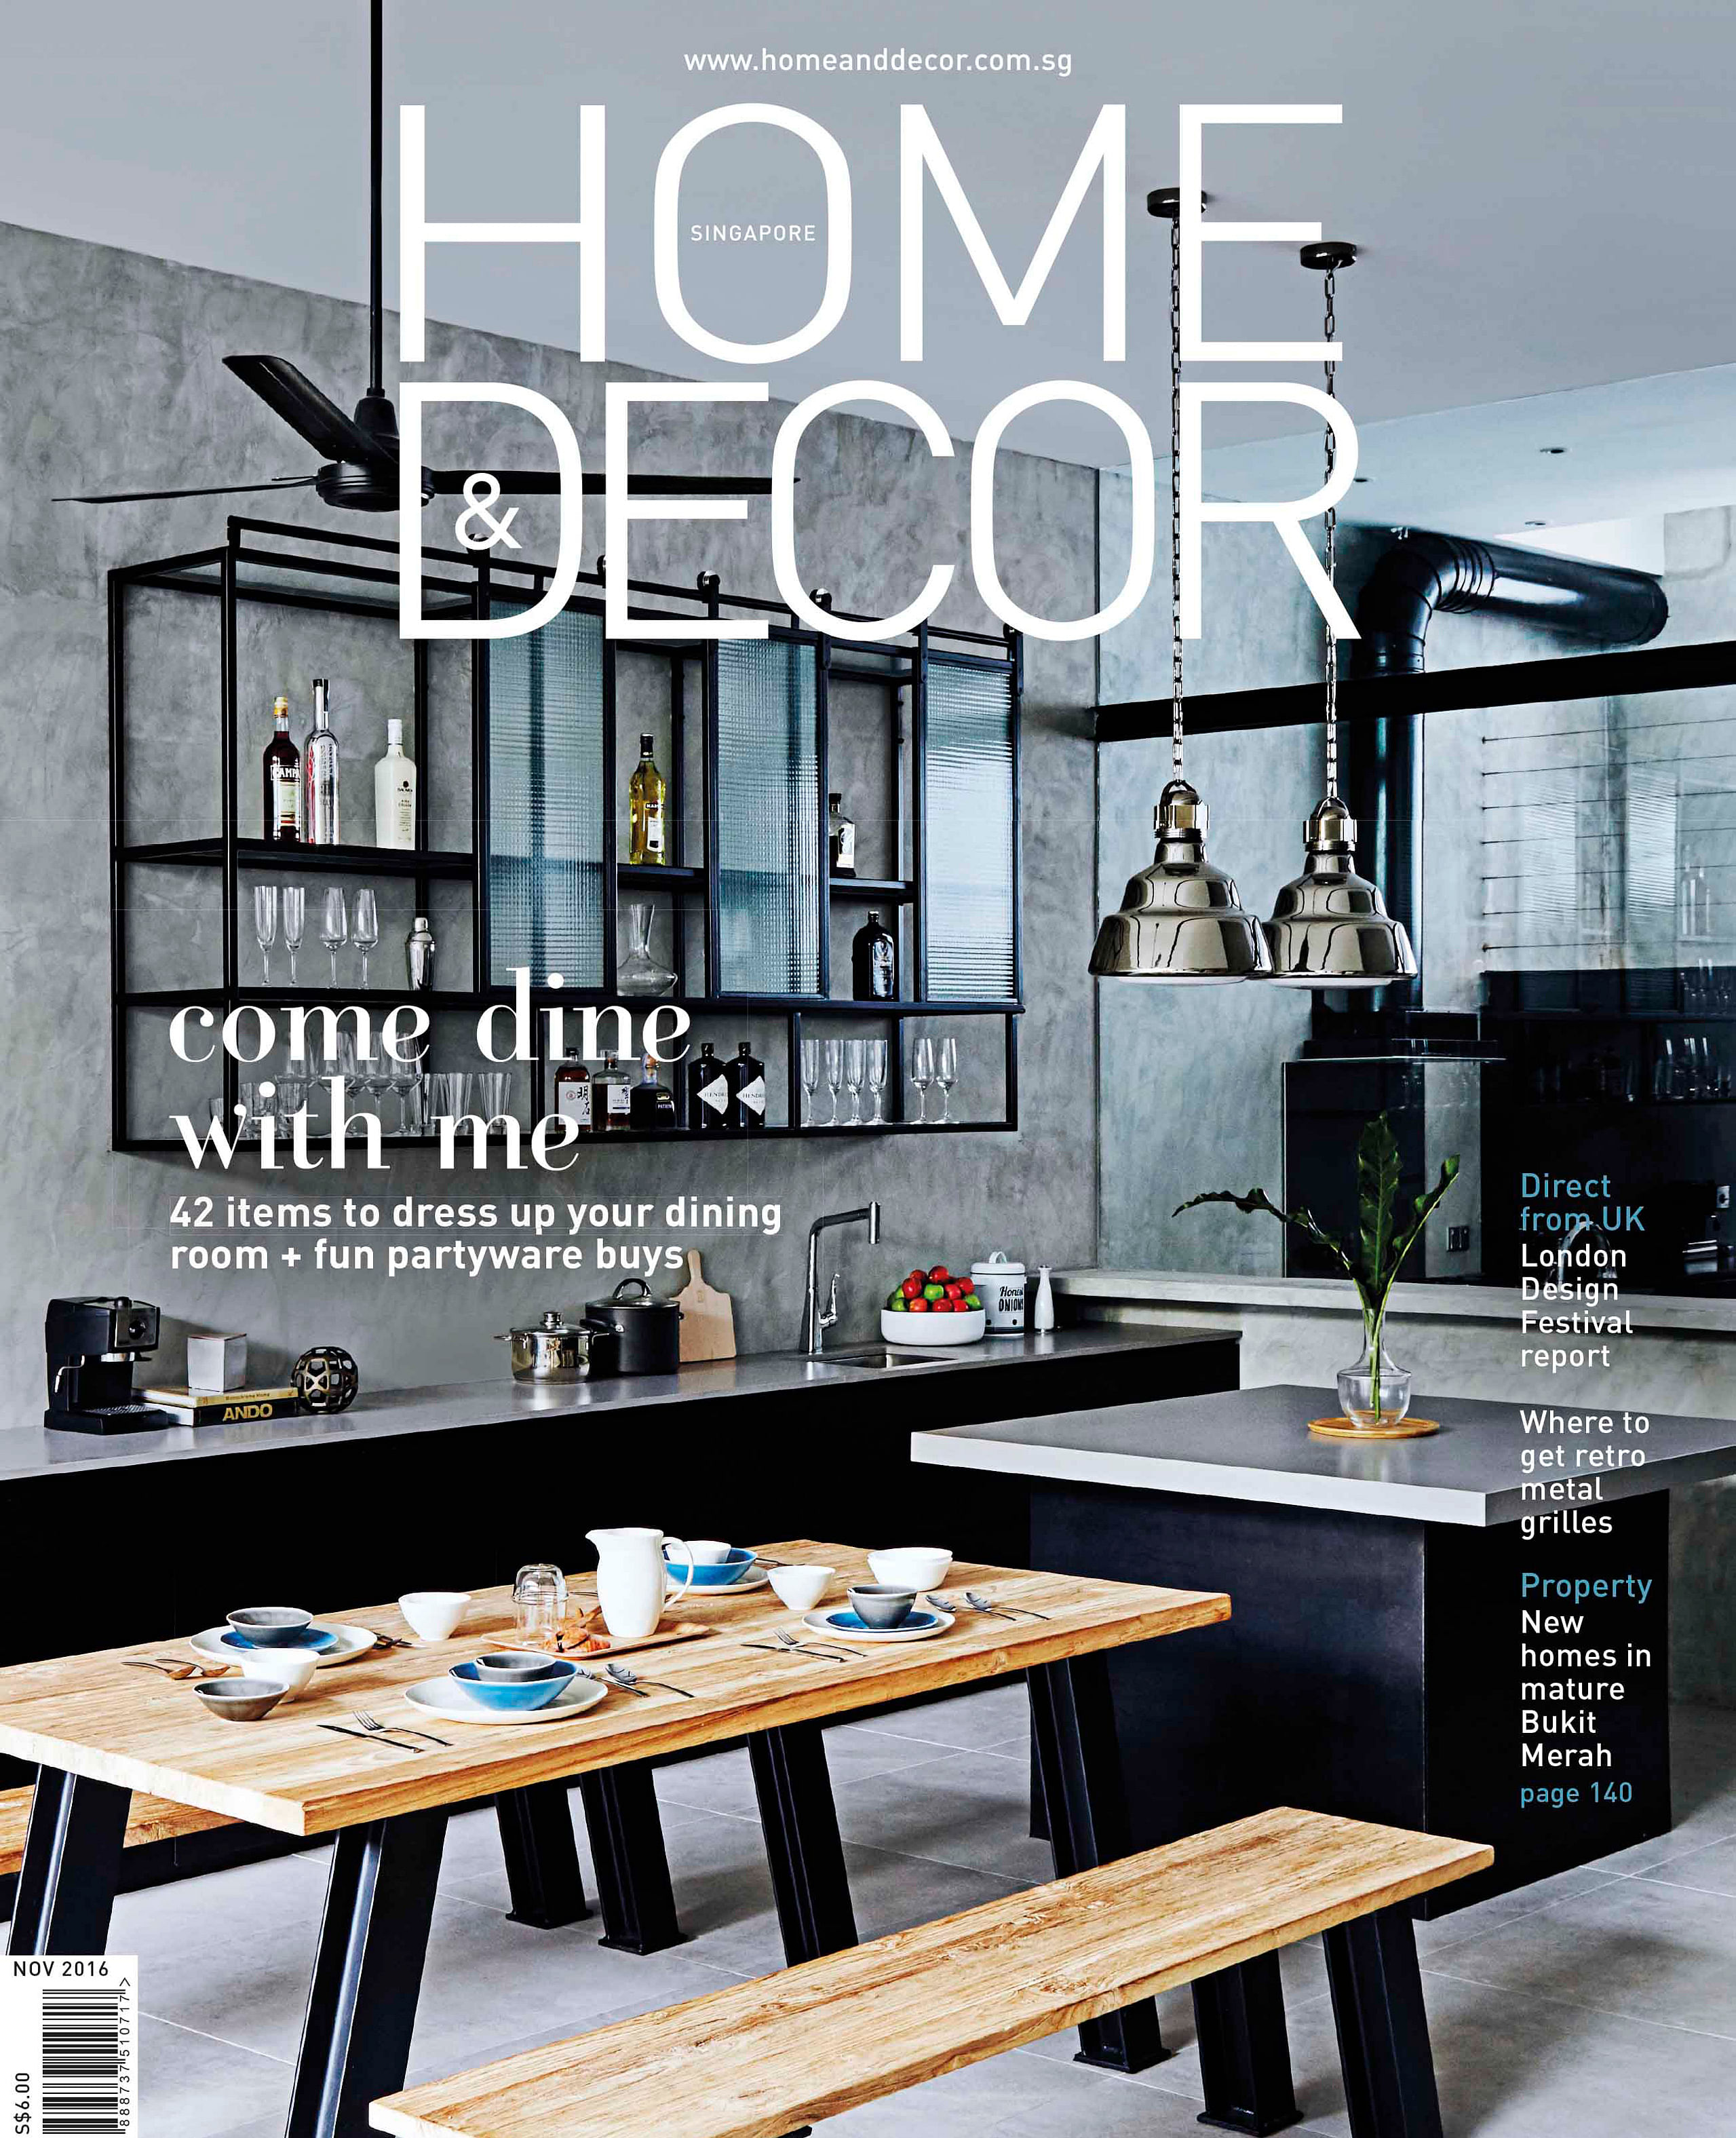 Swell Blast From The Past Home Design News Top Stories The Gmtry Best Dining Table And Chair Ideas Images Gmtryco